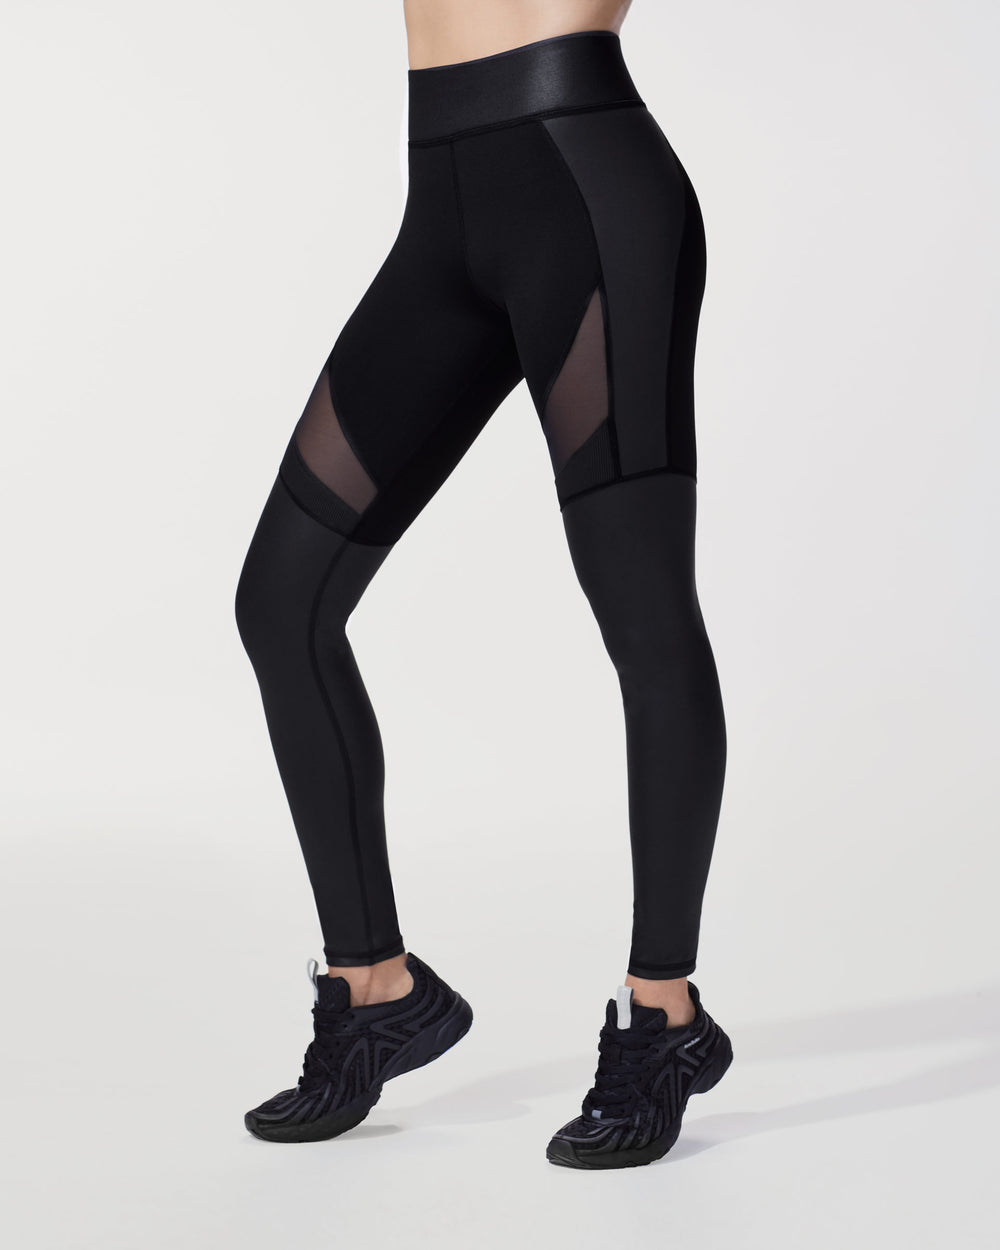 Enigma Legging - Liquid Black